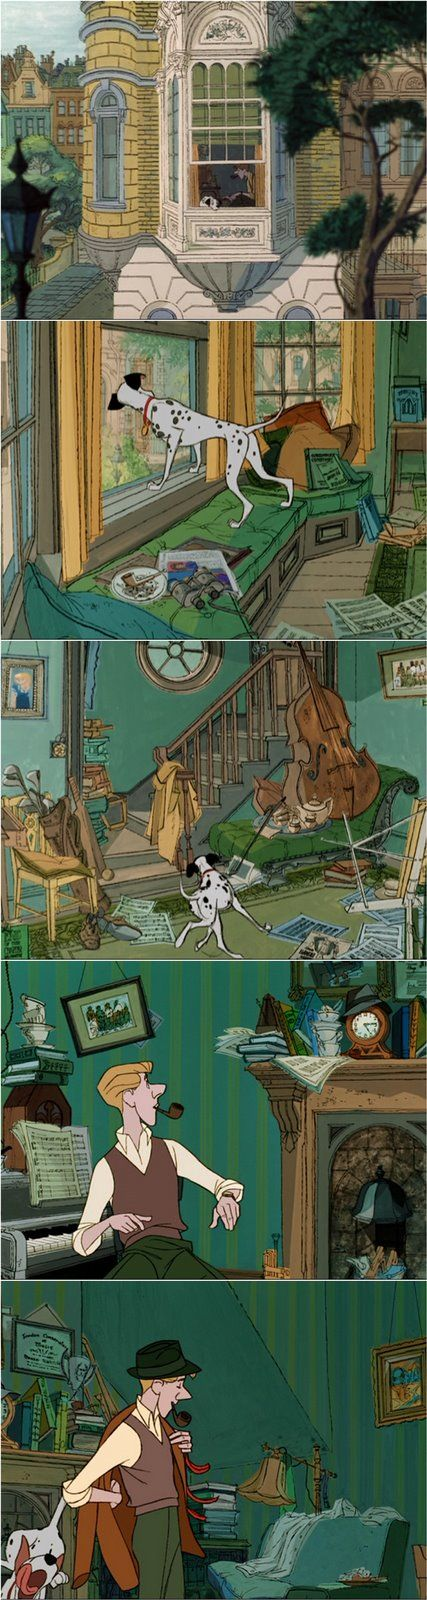 Roger's flat -  101 dalmatians. Reportedly Walt Disney hated this cartoon animation. He said it was too much like pencil drawings and not nearly up to par from his past masterpieces. I totally agree!